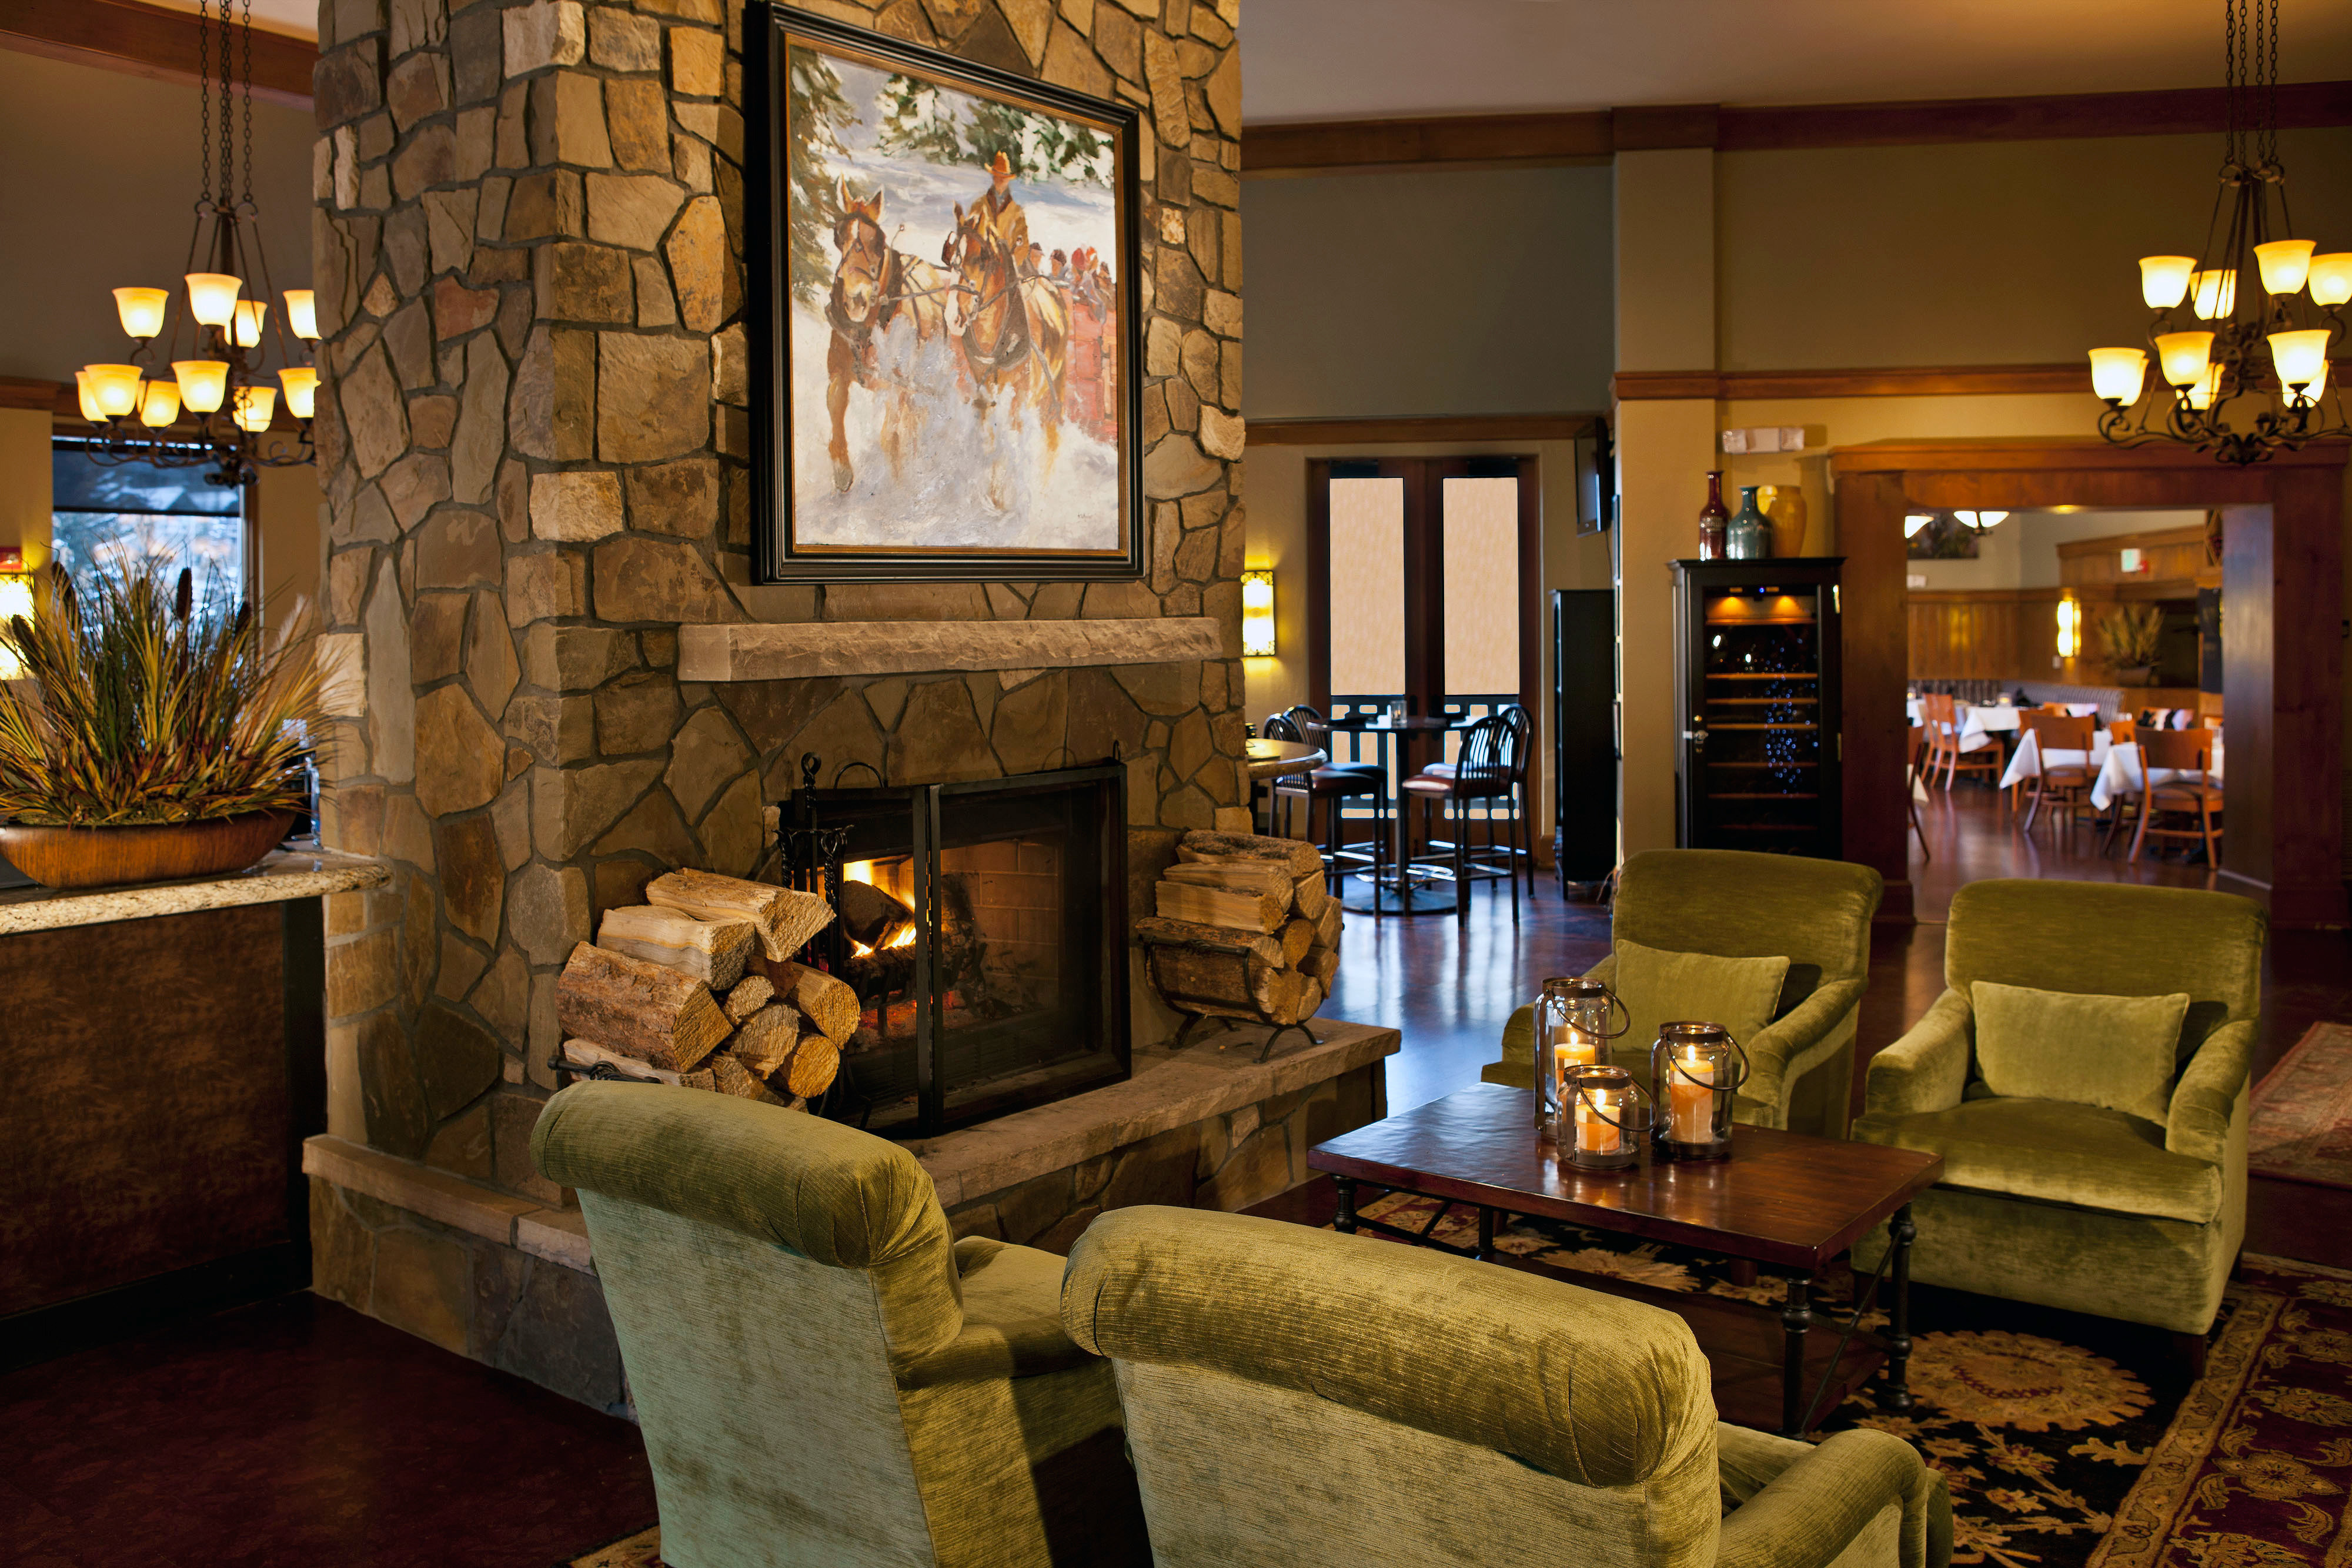 Fireplace Lodge Lounge Romantic Ski living room property home cottage mansion Lobby farmhouse